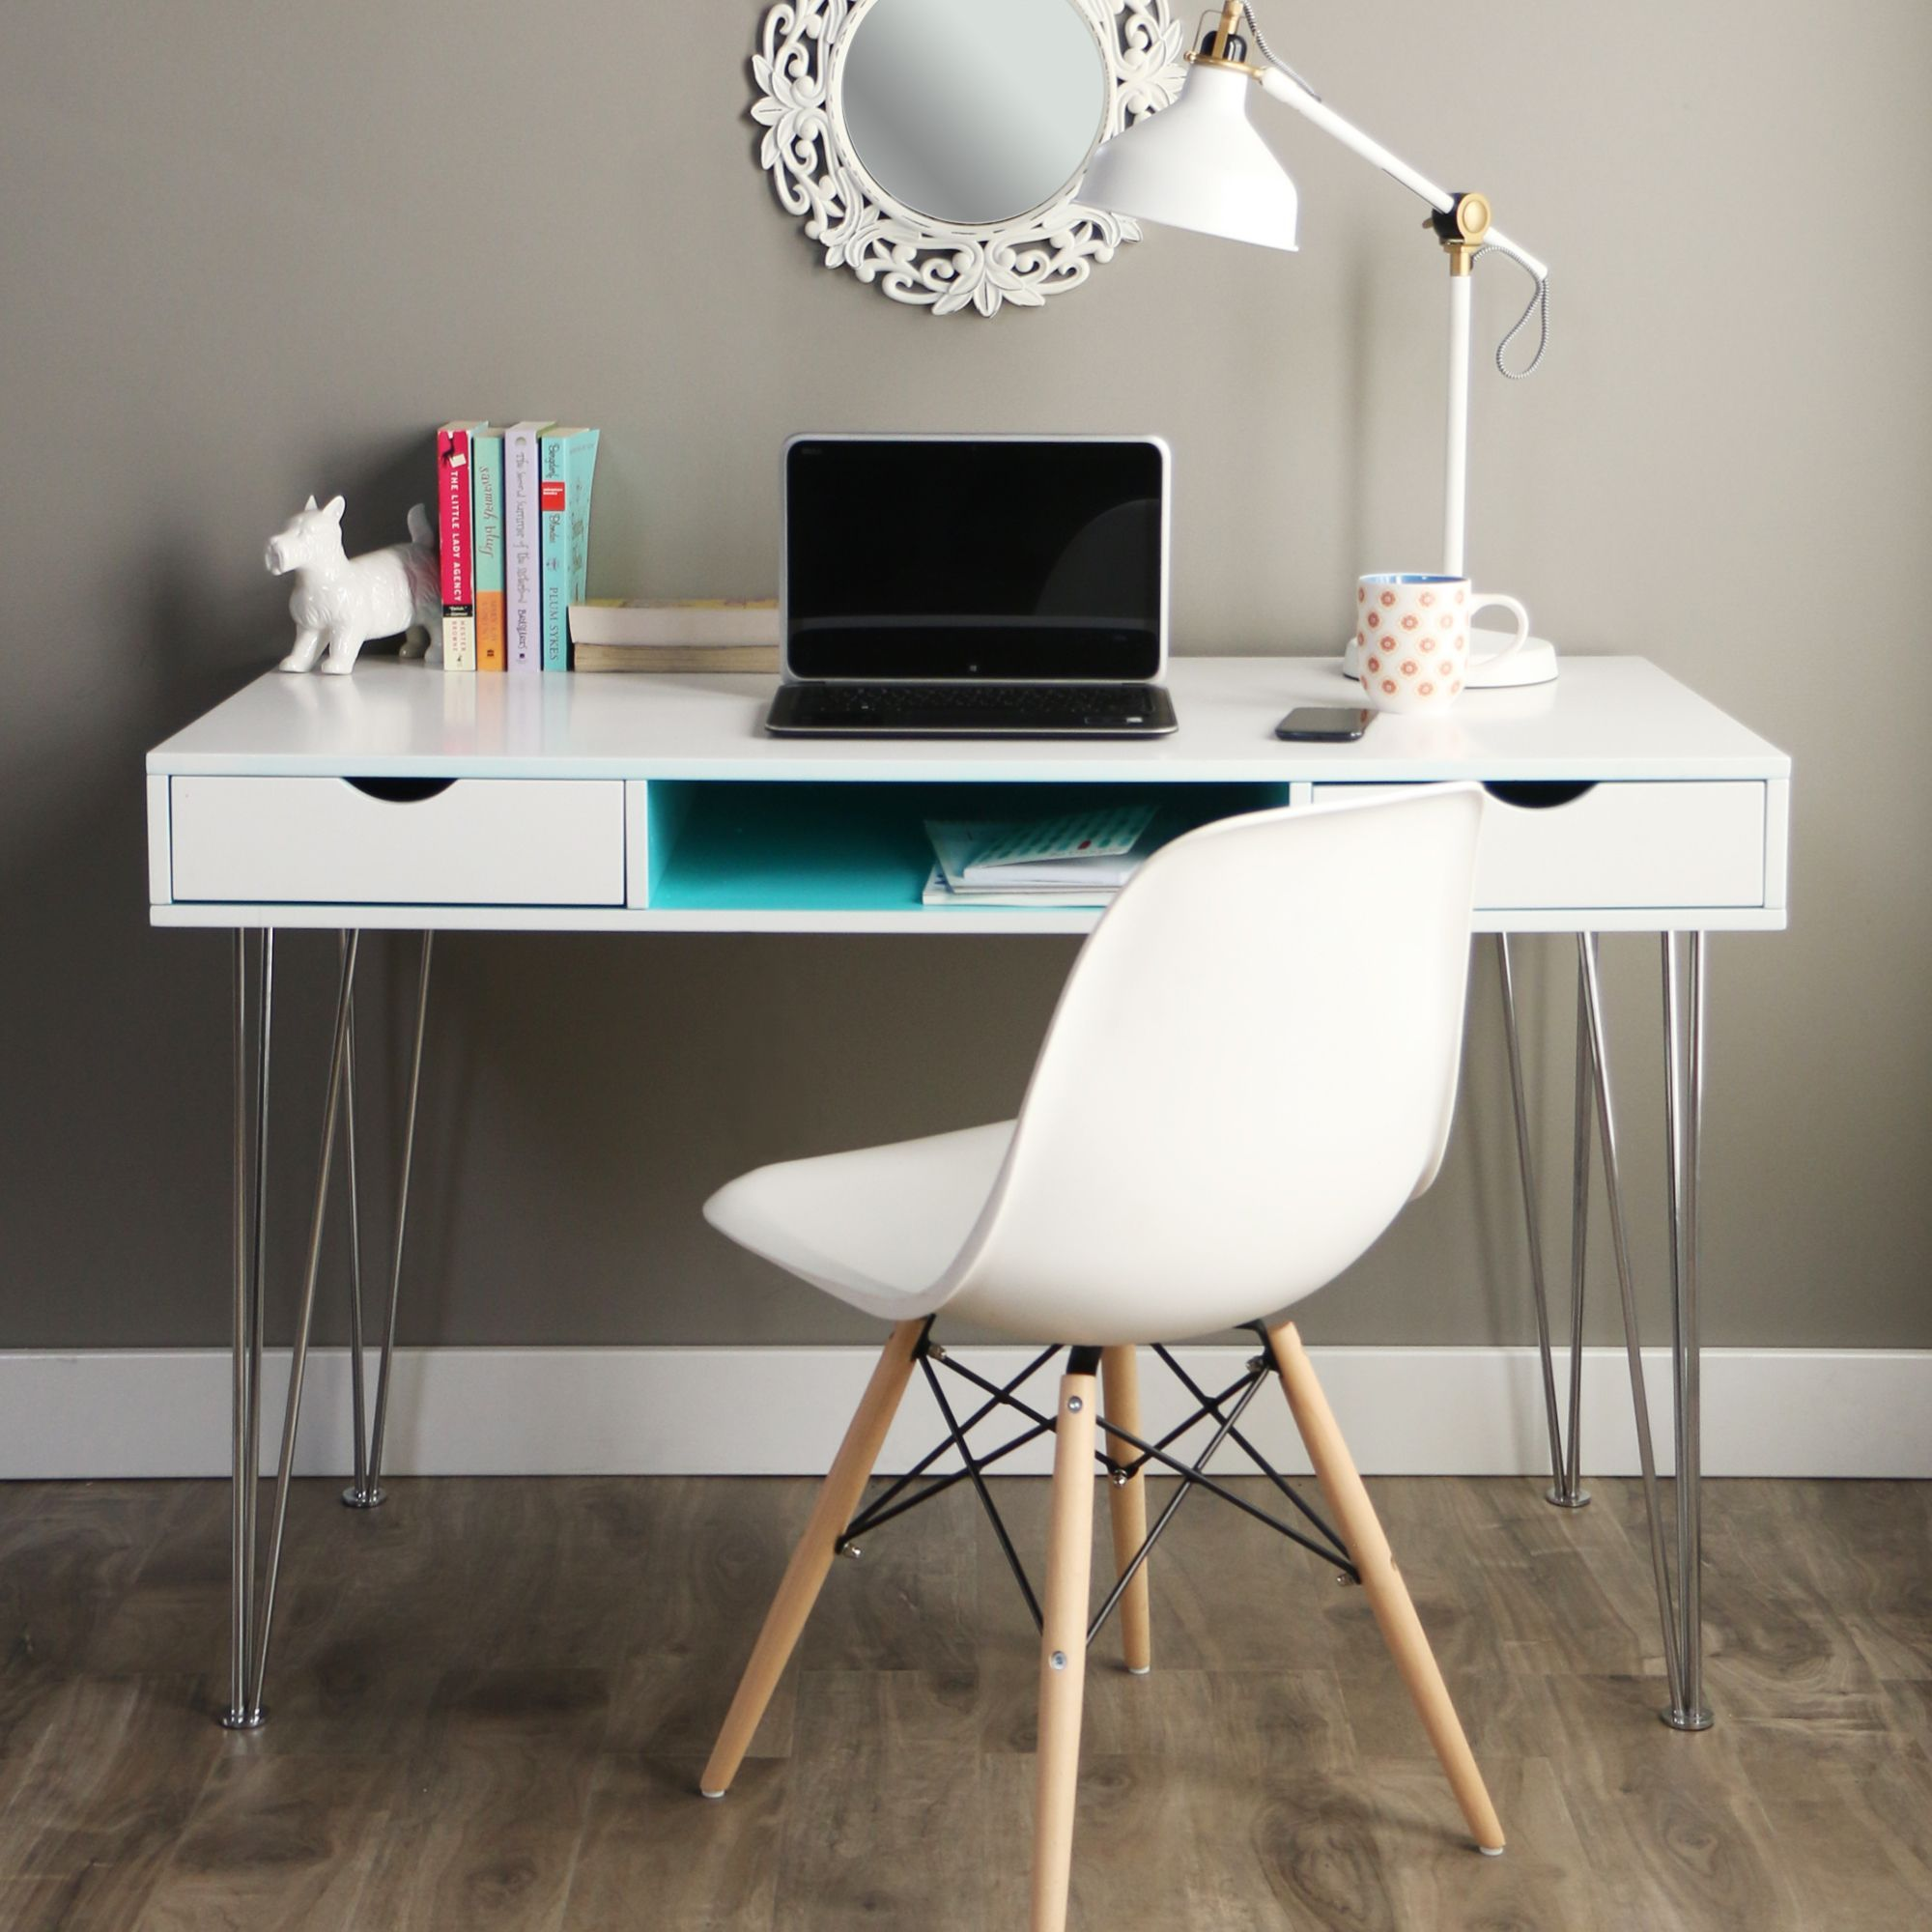 Swell 48 Inch Color Accent Desk Aqua Blue 48 Color Accent Desk Beutiful Home Inspiration Semekurdistantinfo